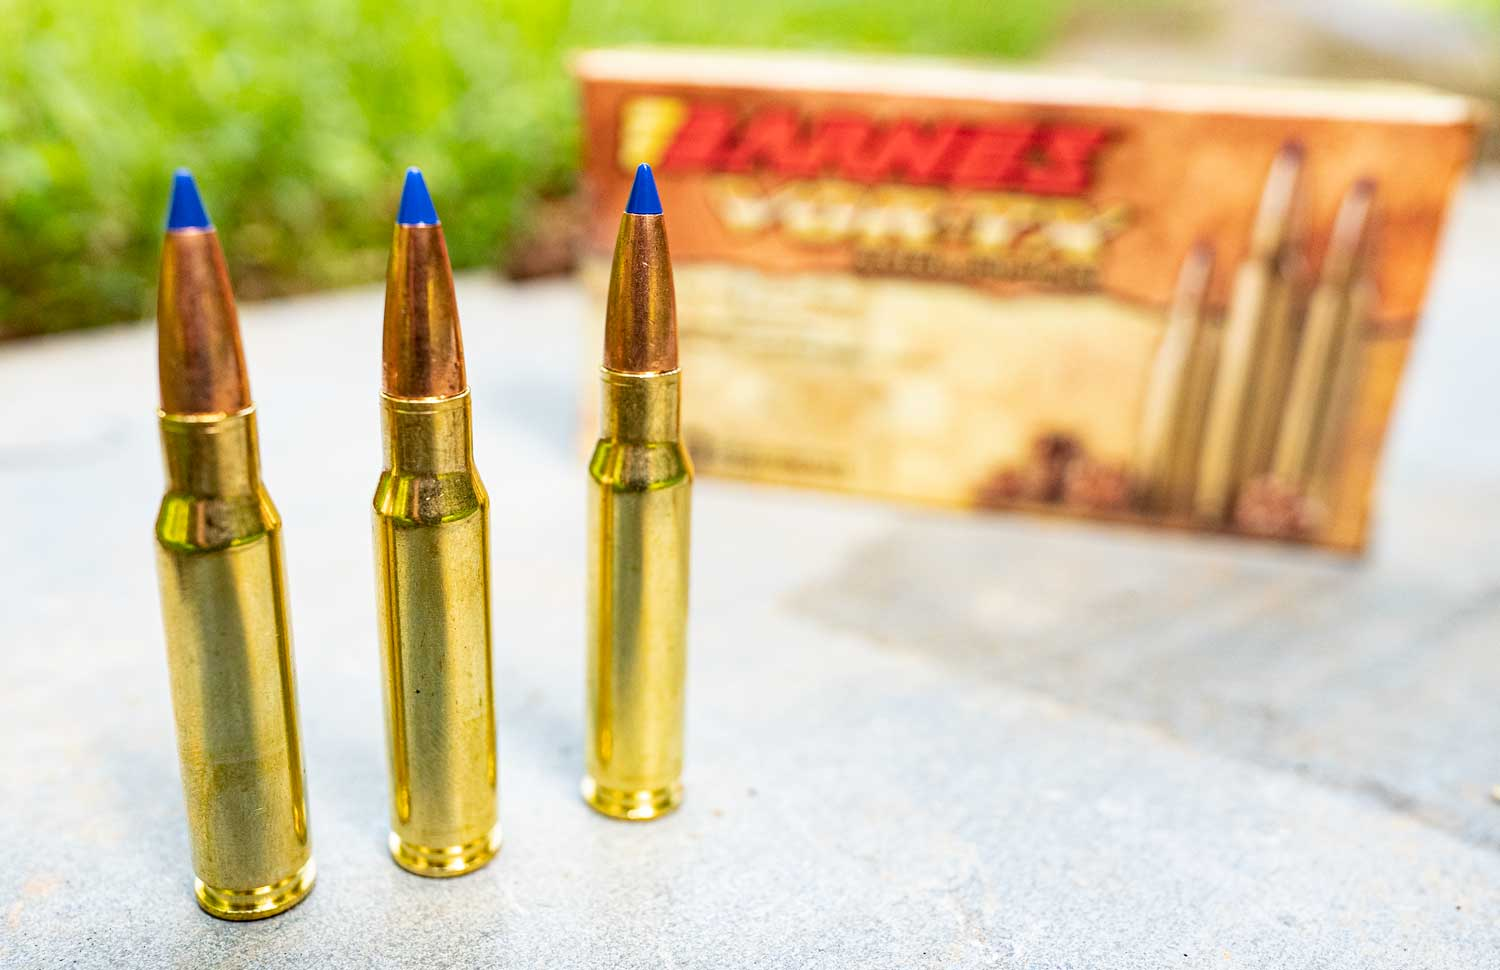 Barnes TTSX bullets and ammo used by hog hunters